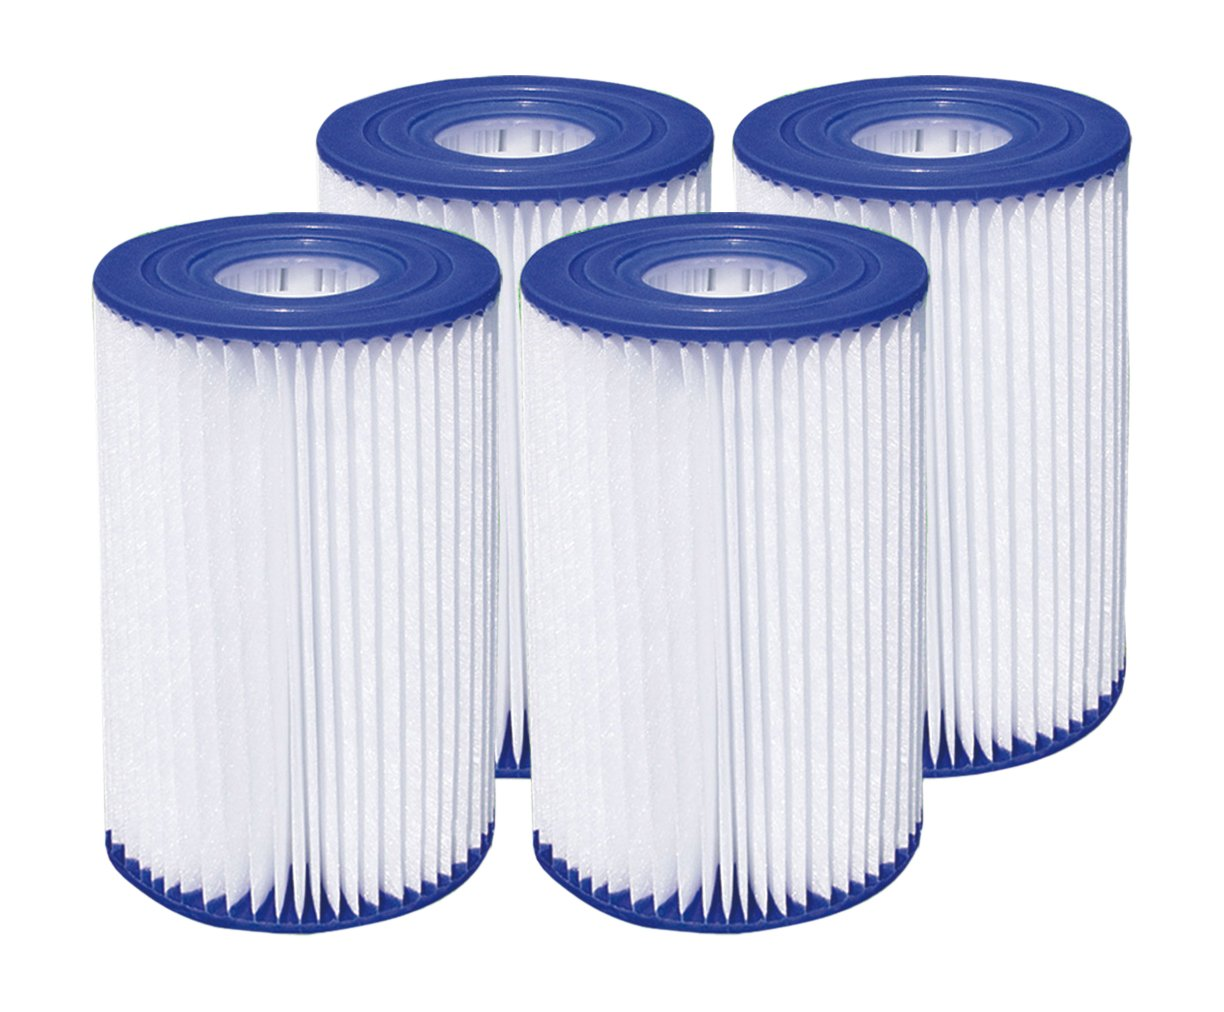 Summer Waves 4.13''x8'' Type A/C Pool Filter Cartridge (4 Pack) by Summer Waves